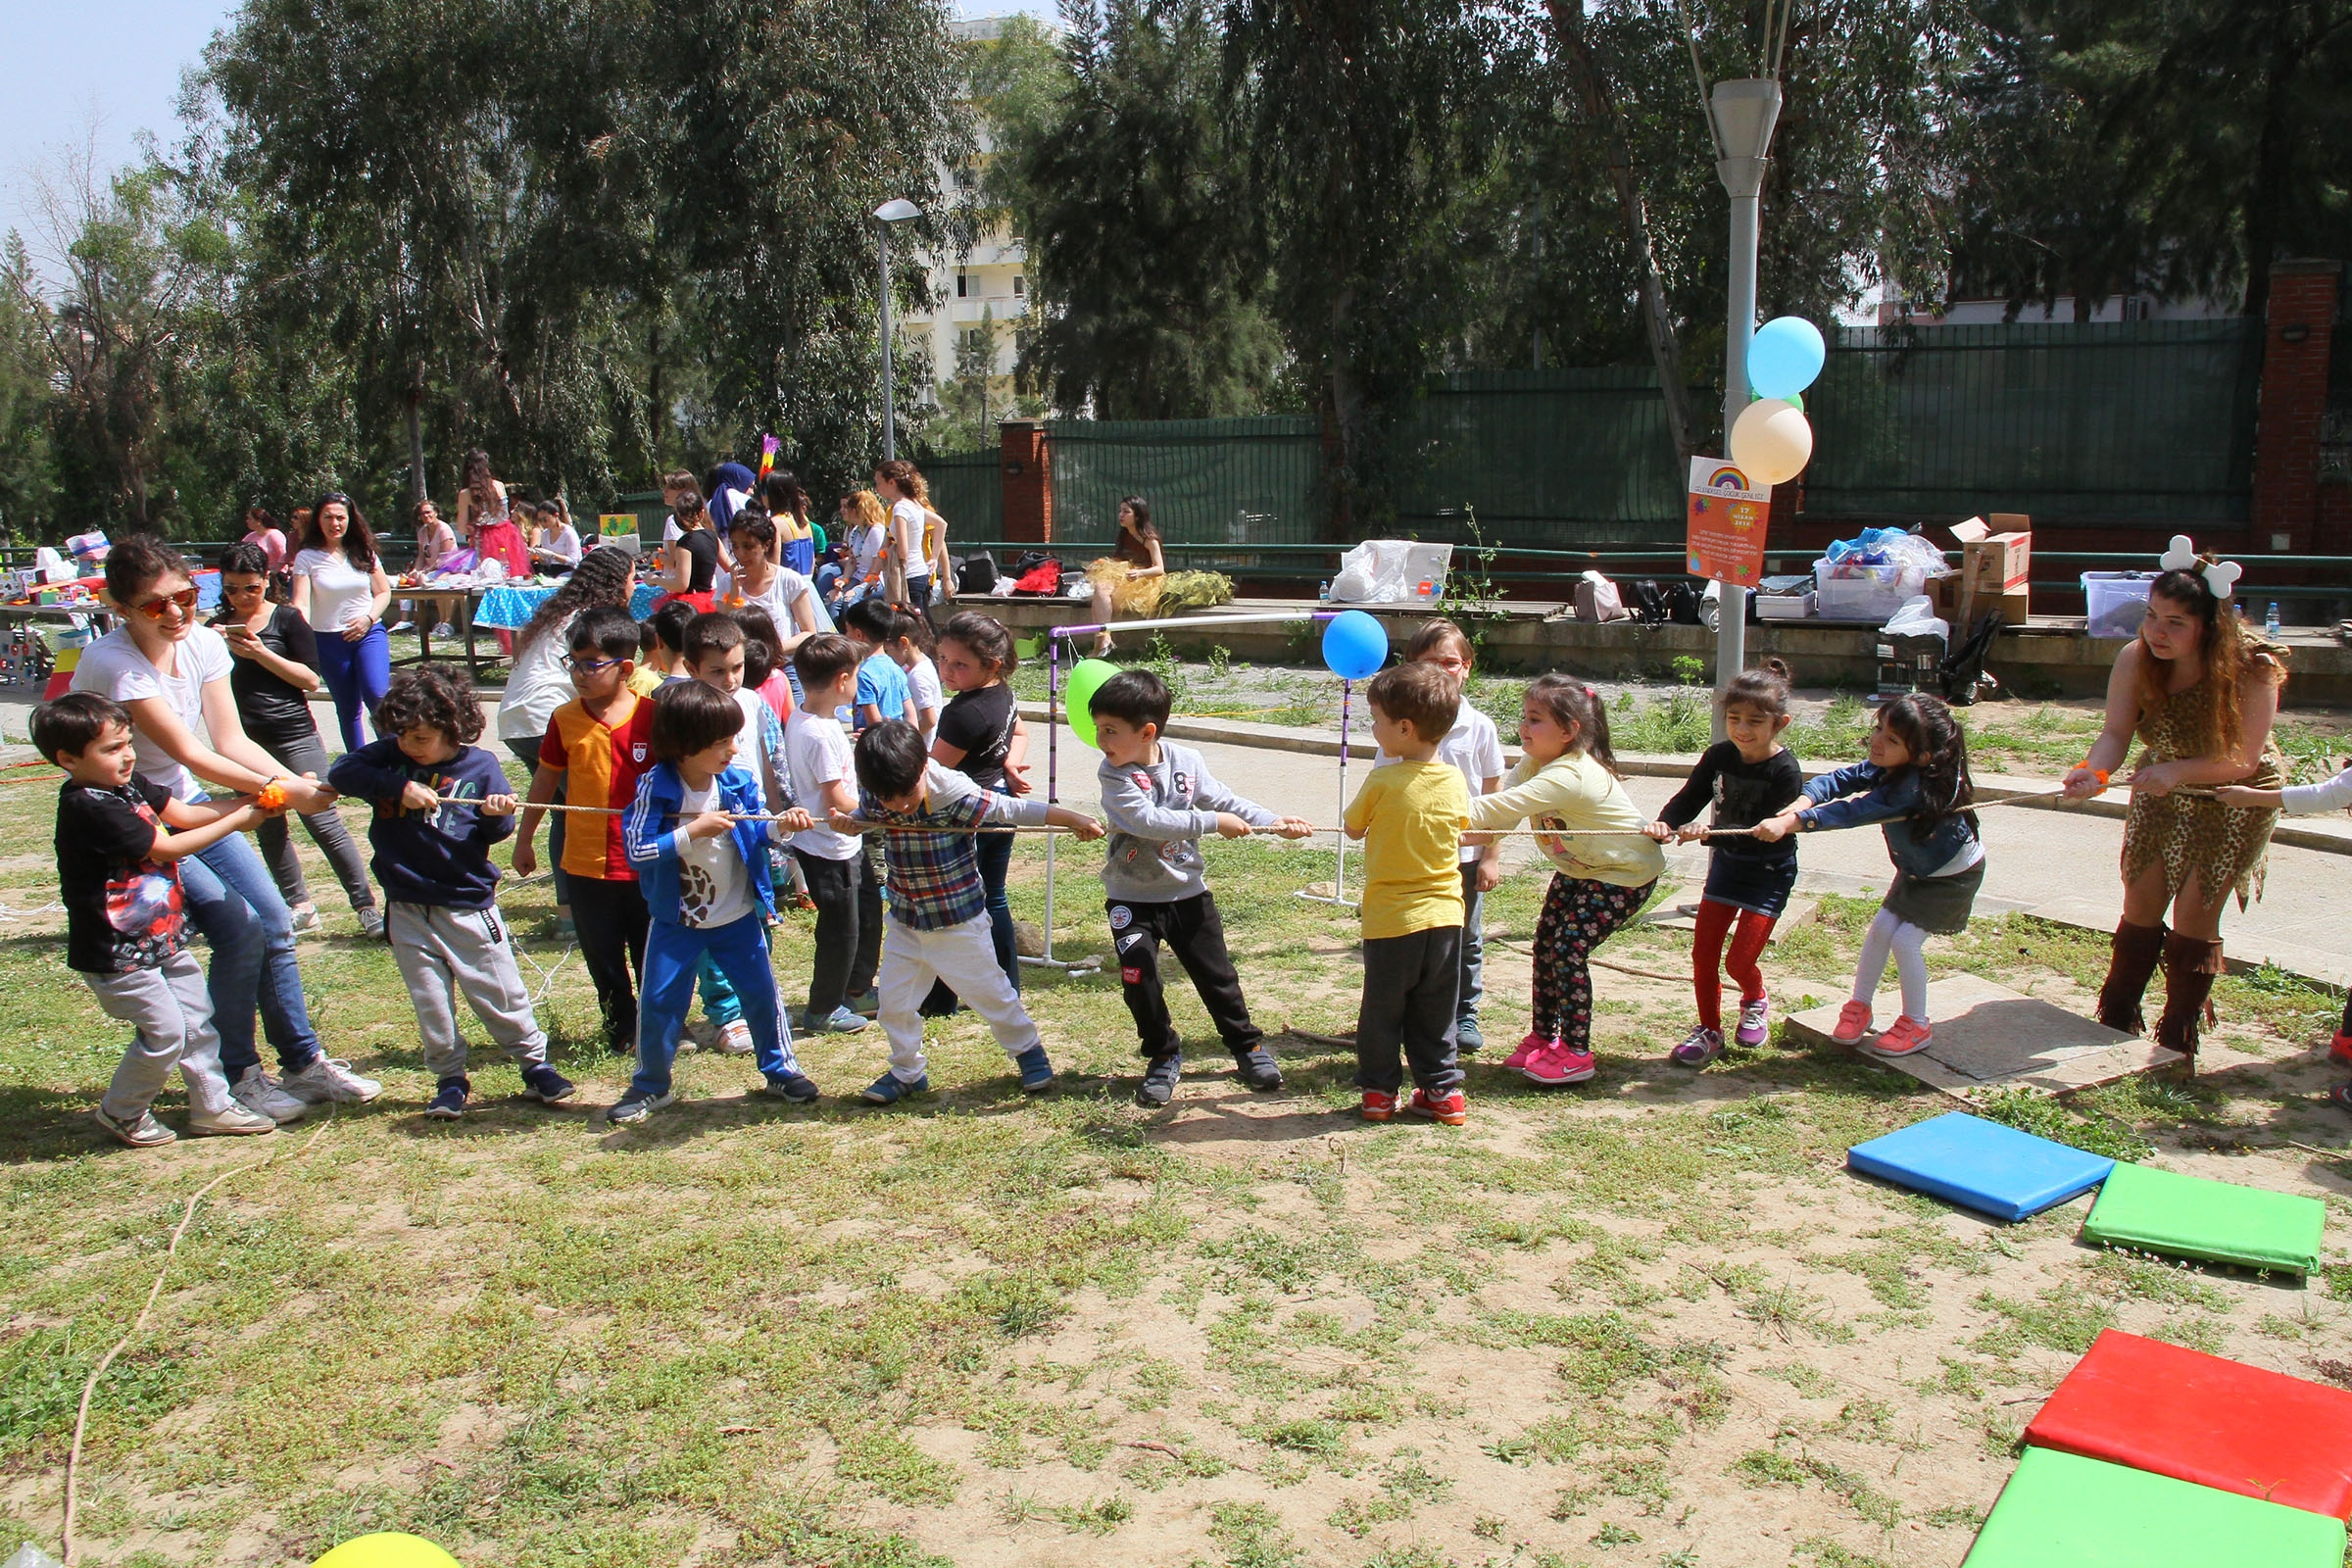 KIDS PLAYED OUTDOOR GAMES